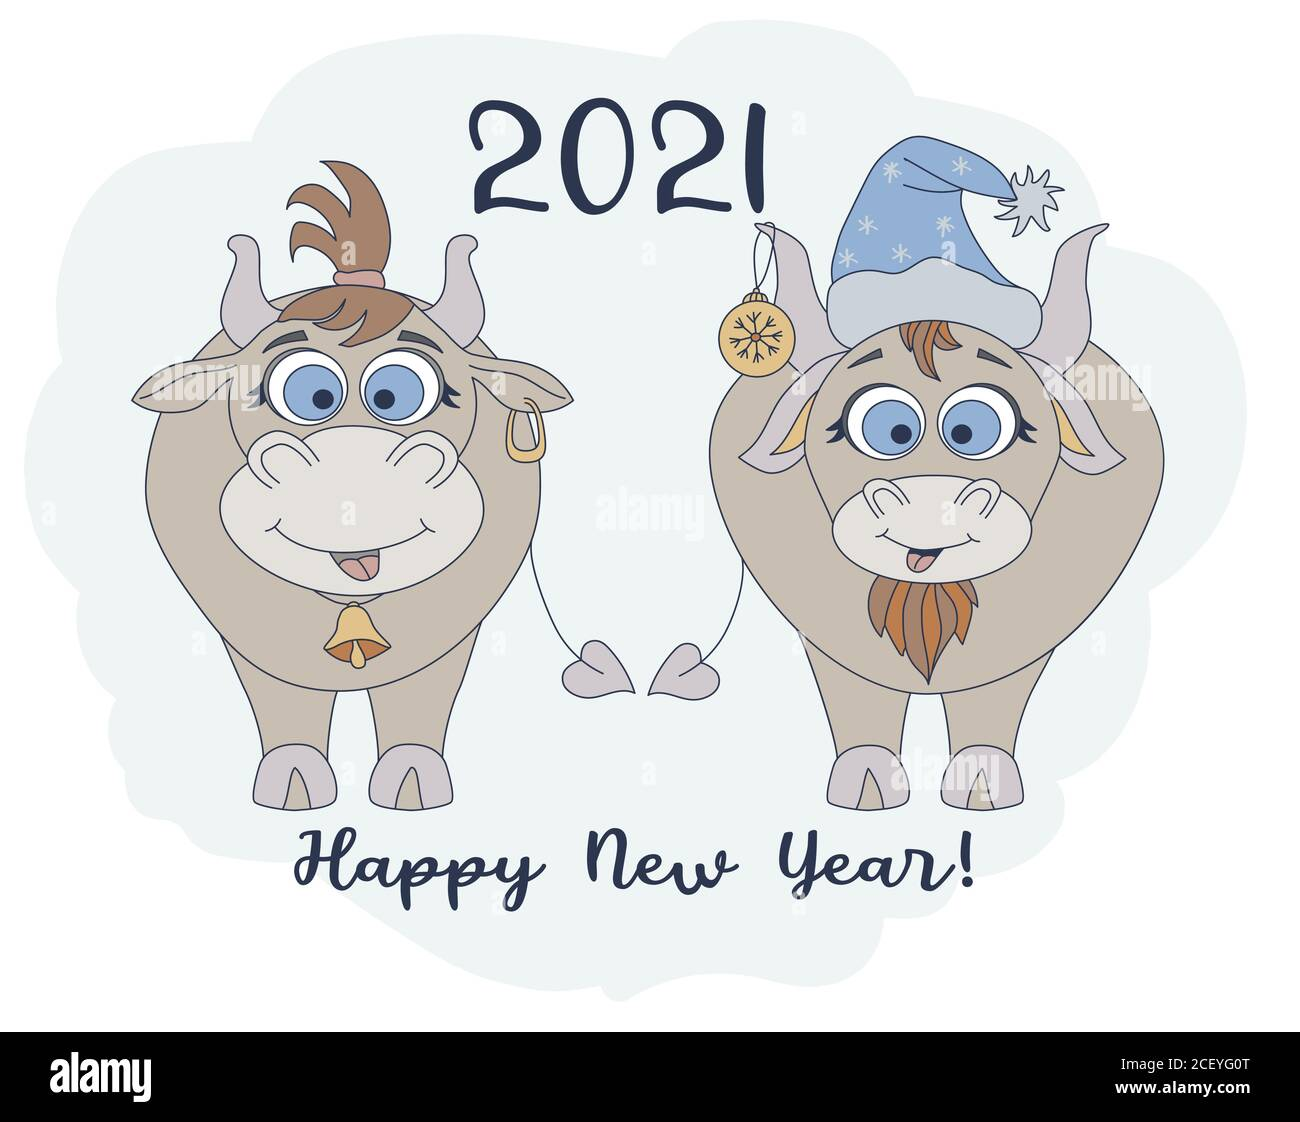 year of the bull 2021 funny characters a cute bull in a new years hat and https www alamy com year of the bull 2021 funny characters a cute bull in a new years hat and a funny cow with a haircut new year card and happy new year greetings image370628184 html